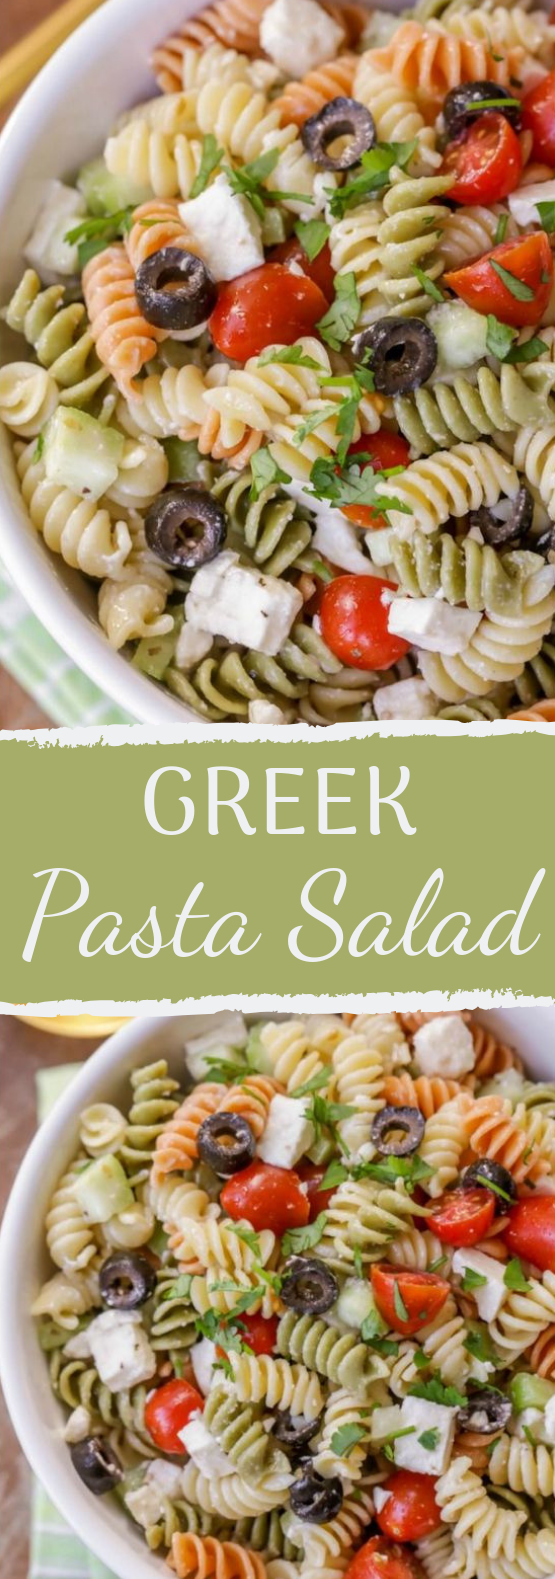 Greek Pasta Salad #healthysalad #vegetarian